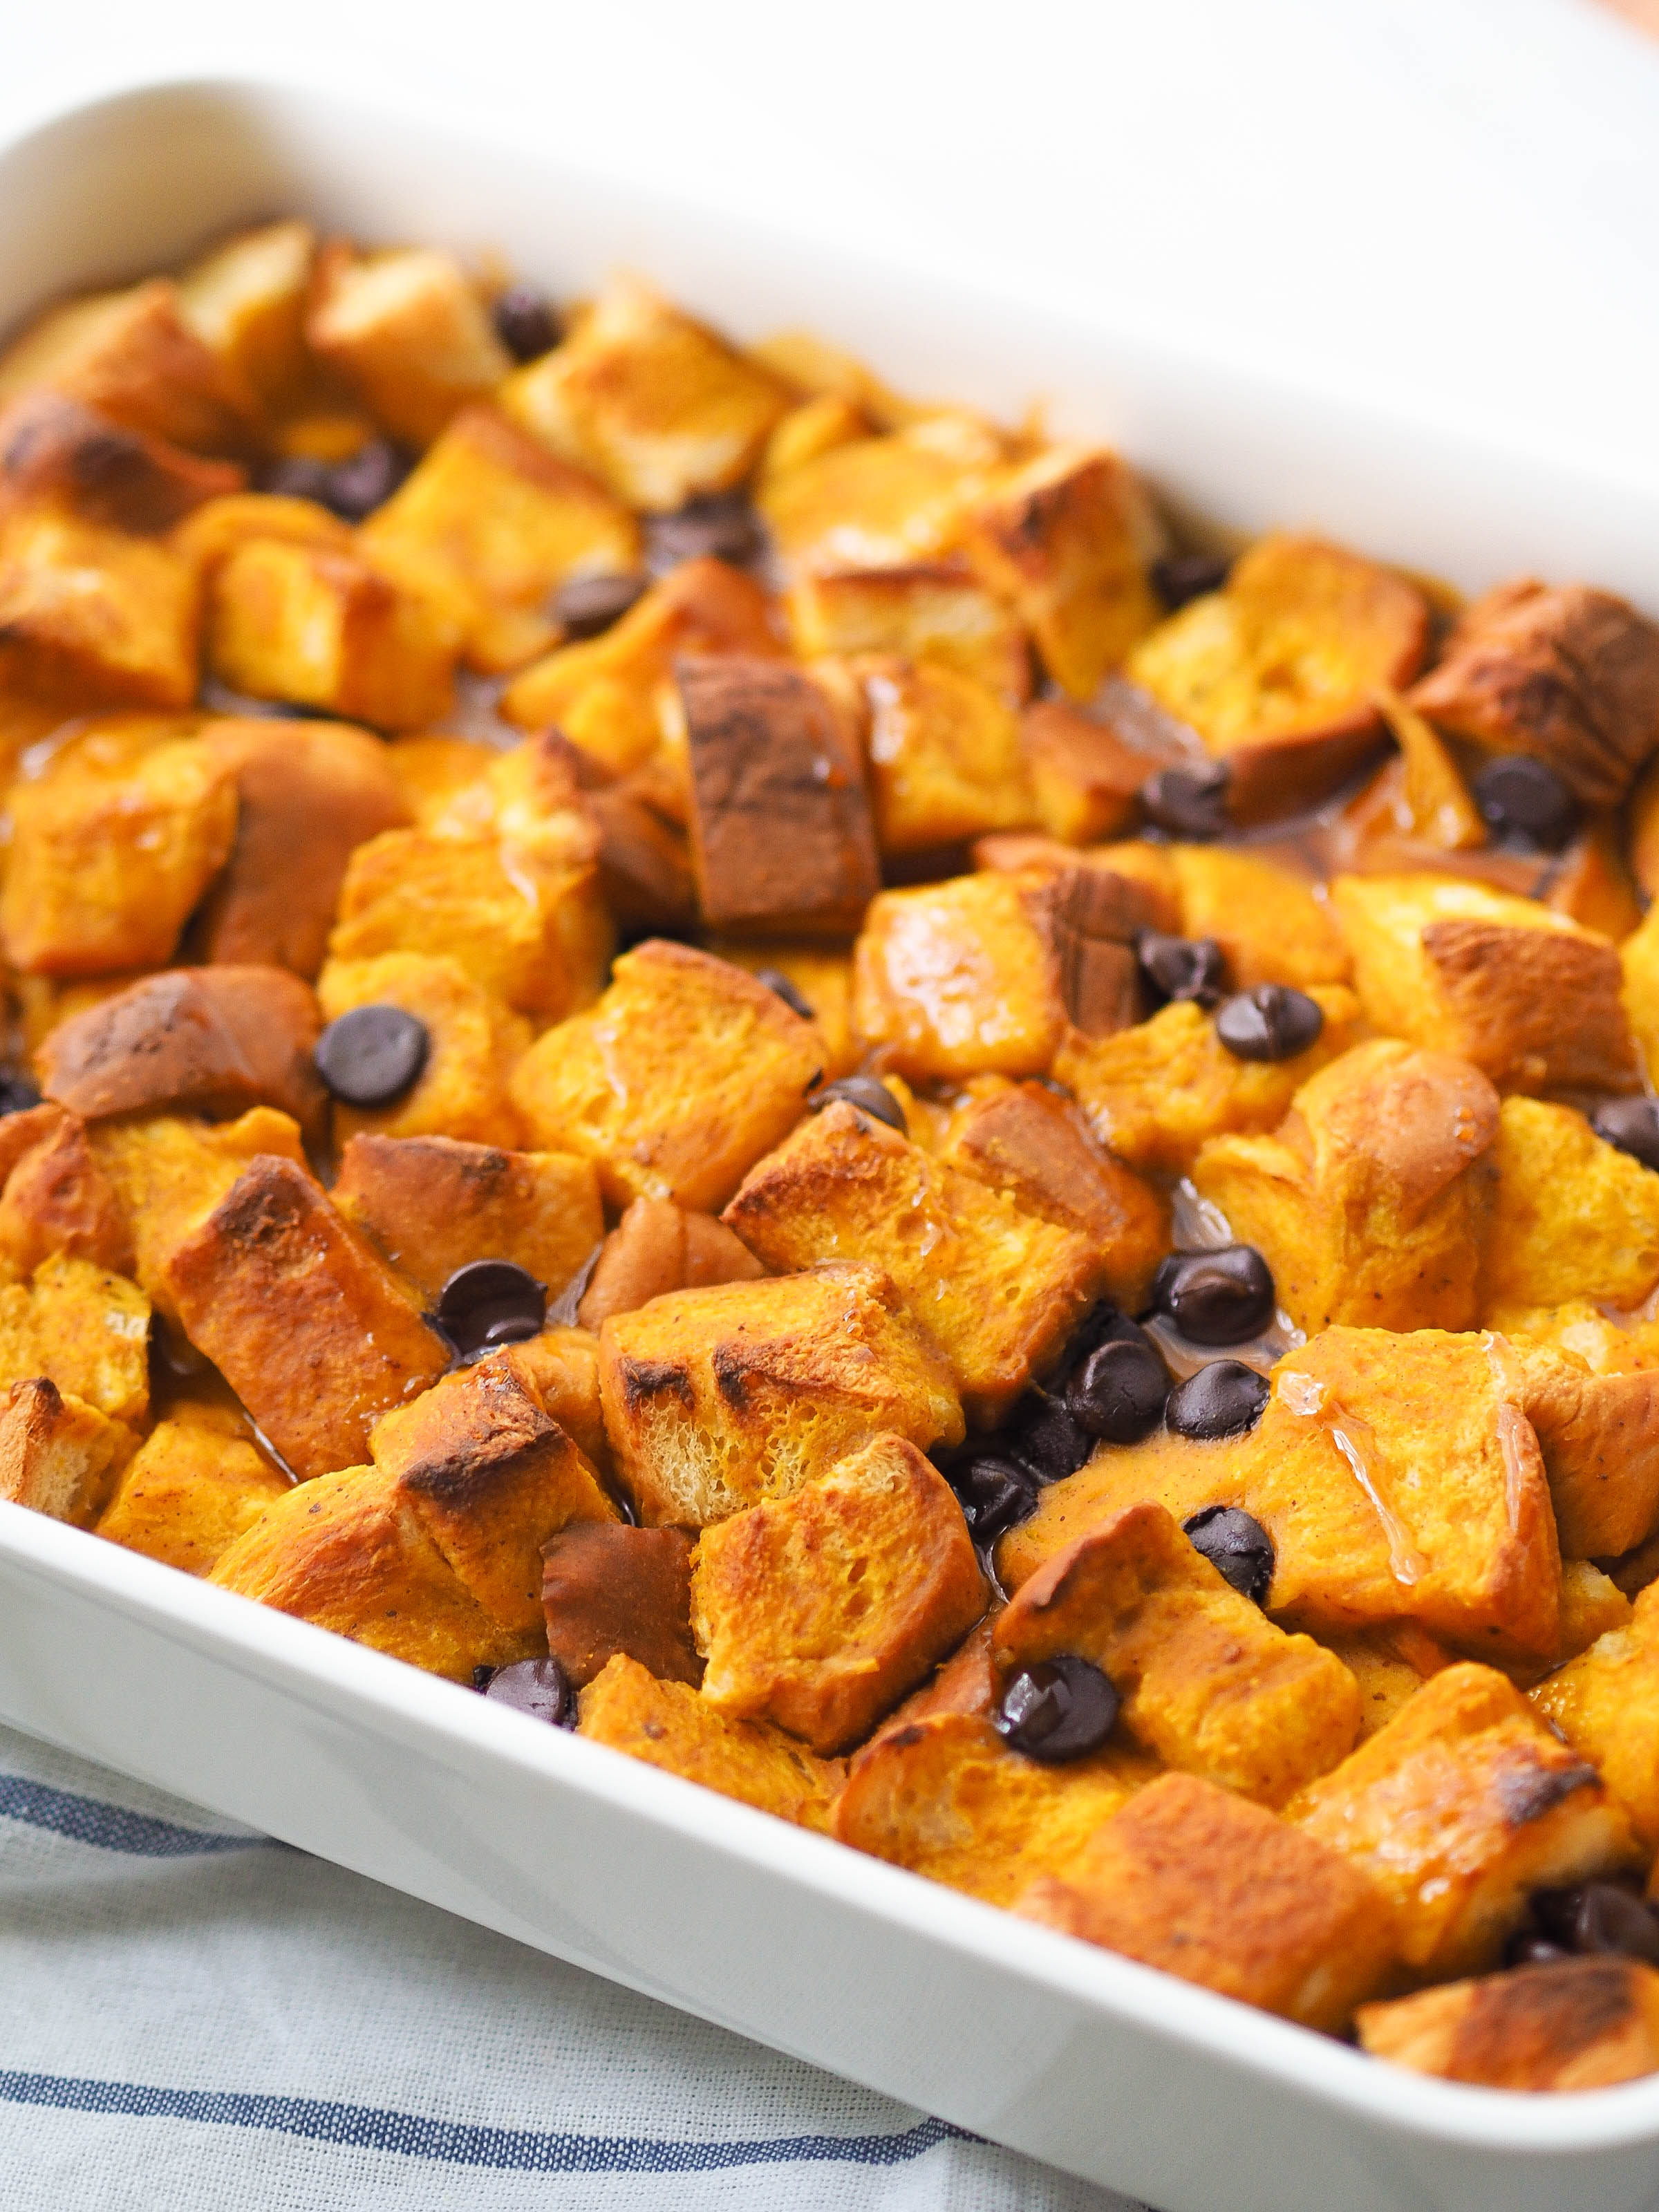 Move over pie! Make this pumpkin coconut dark chocolate chunk bread pudding for Thanksgiving! #thanksgiving #breadpudding #pumpkin #dessert #chocolate